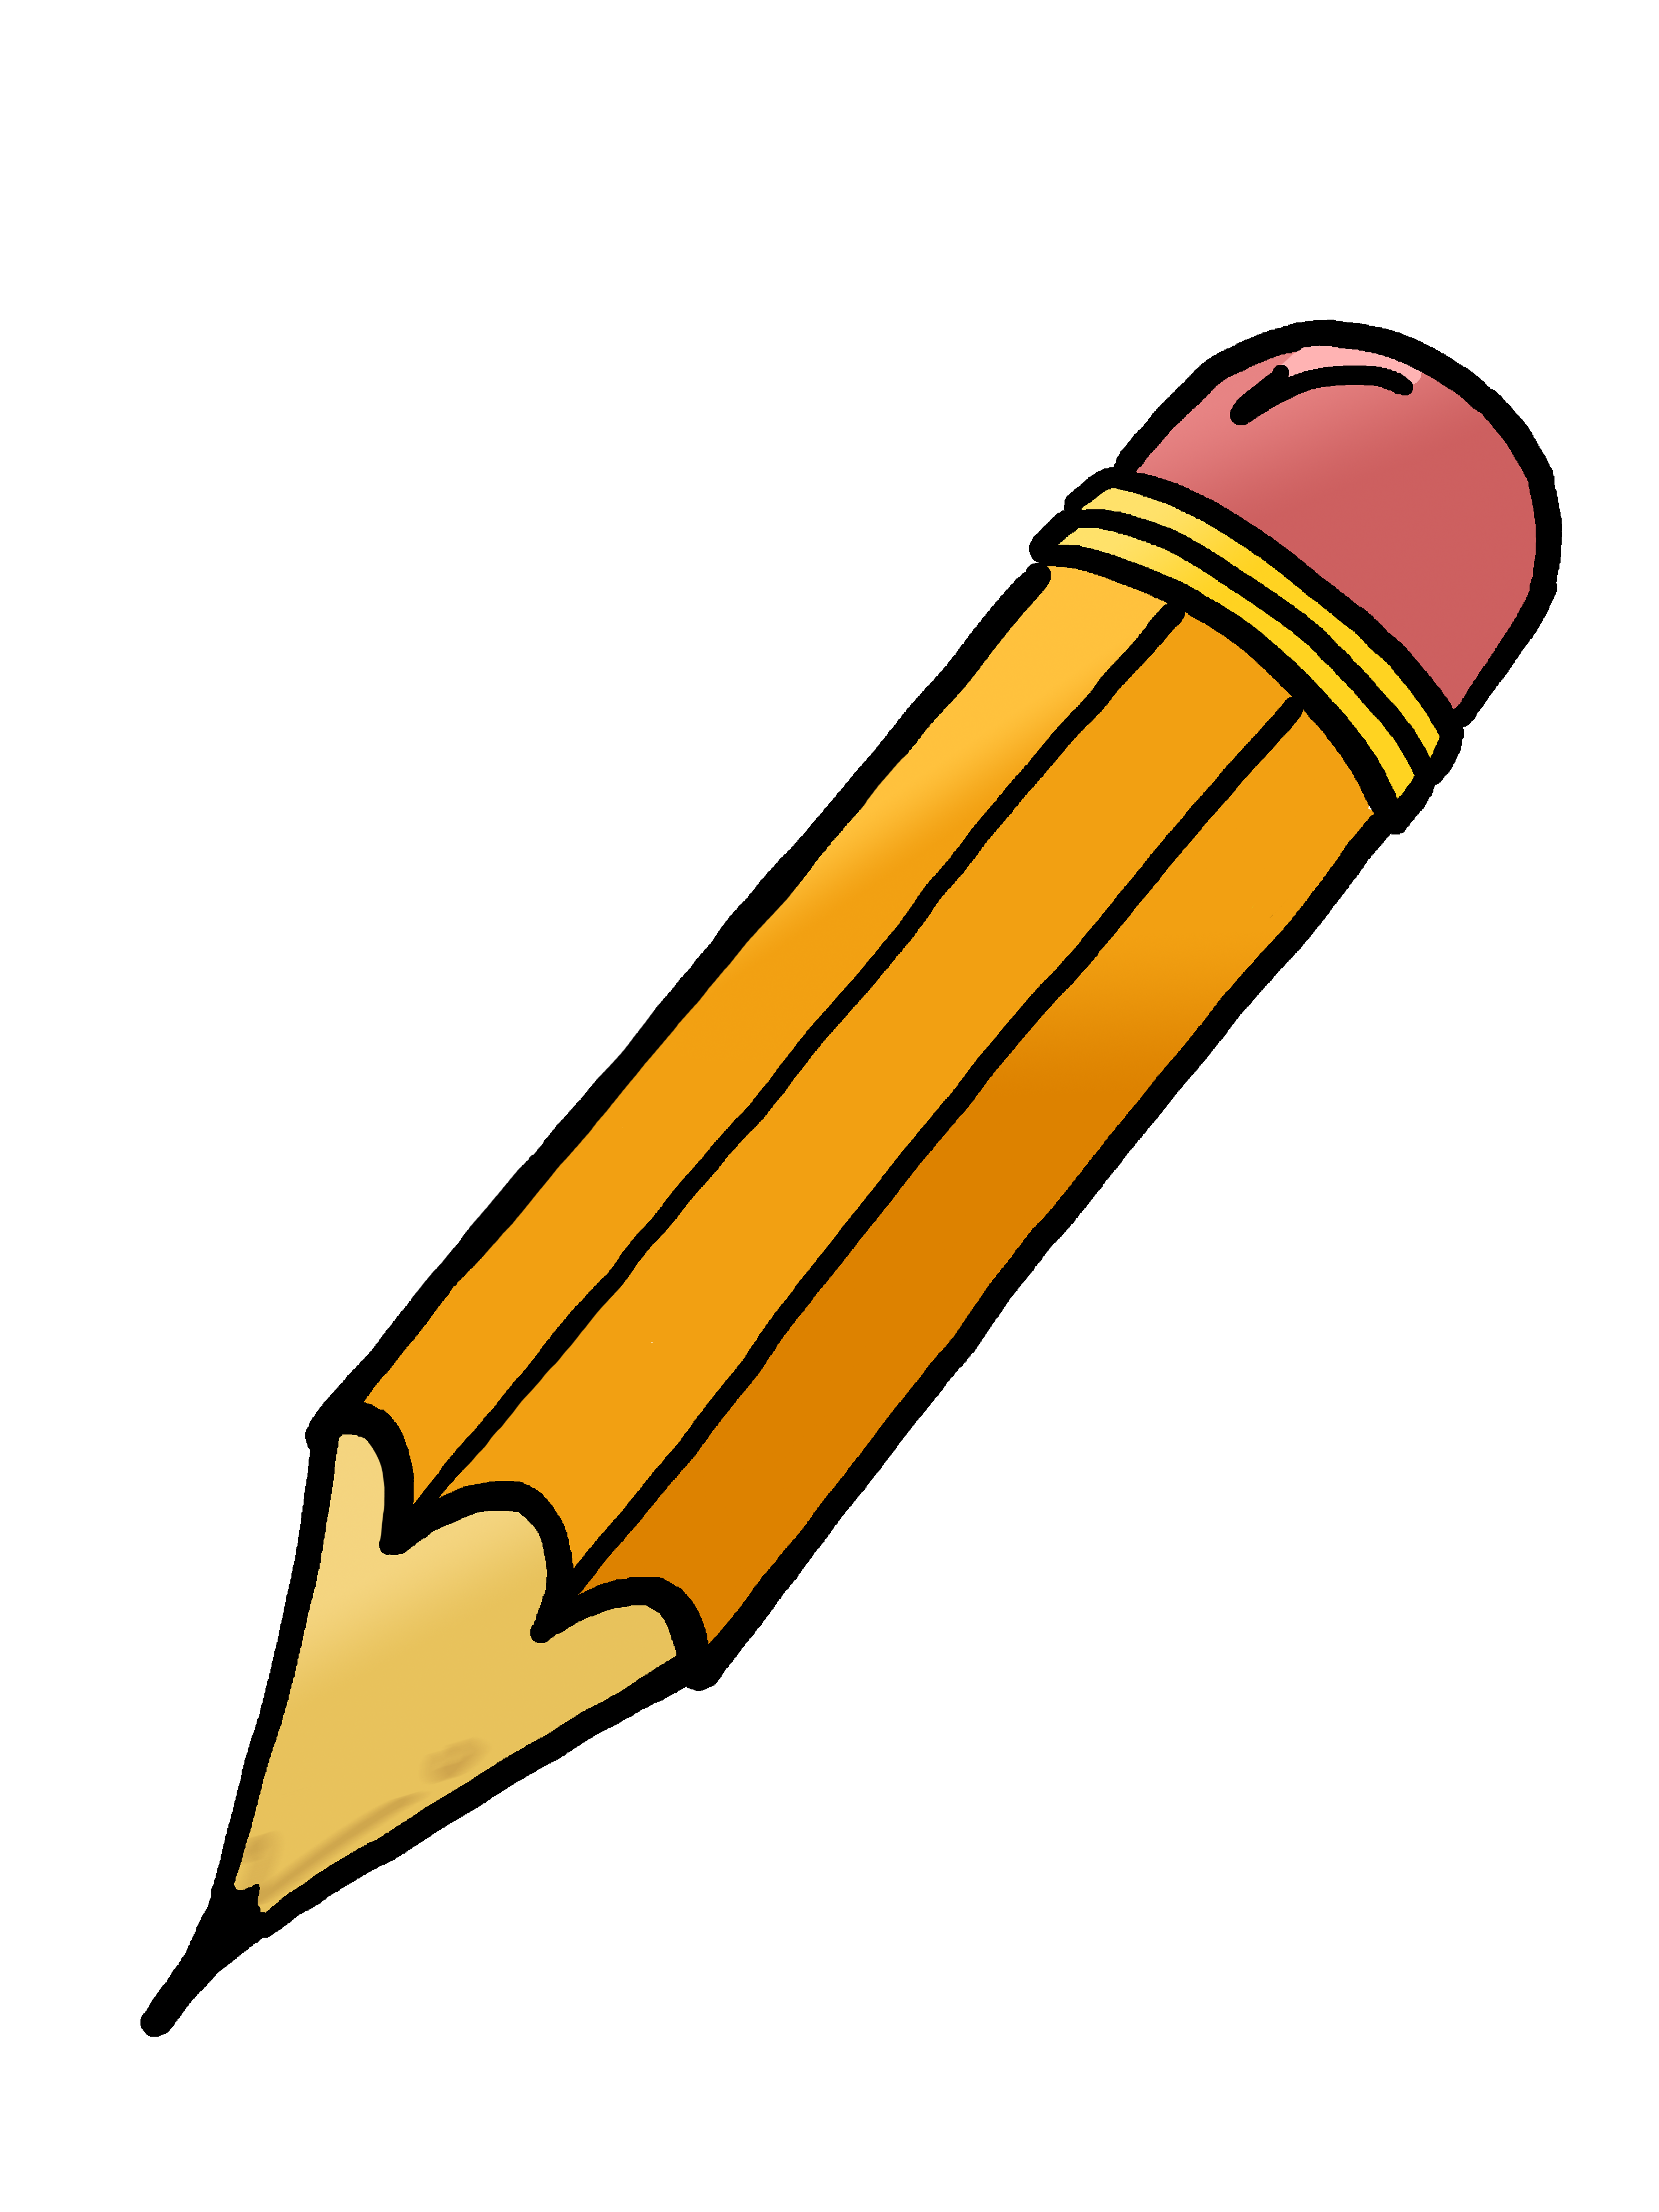 Pencil Clip Art Black And White Free Clipart Images